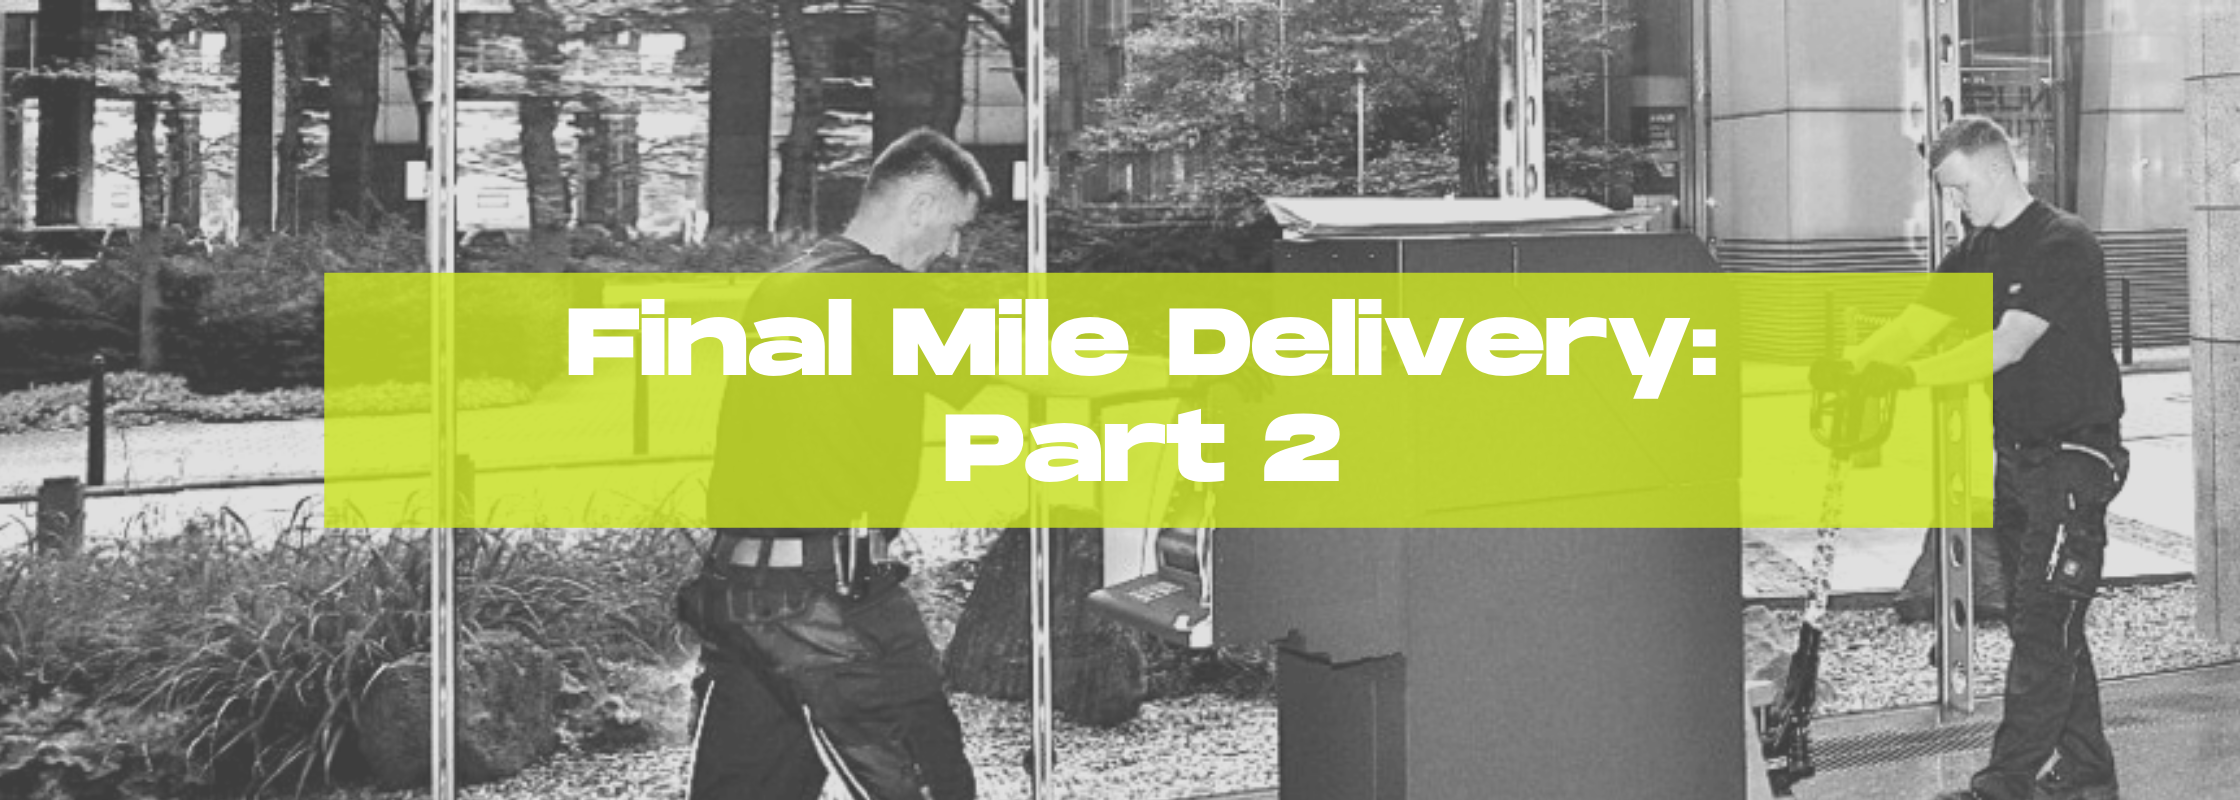 Consequence of Failure in the Final Mile [Part 2]